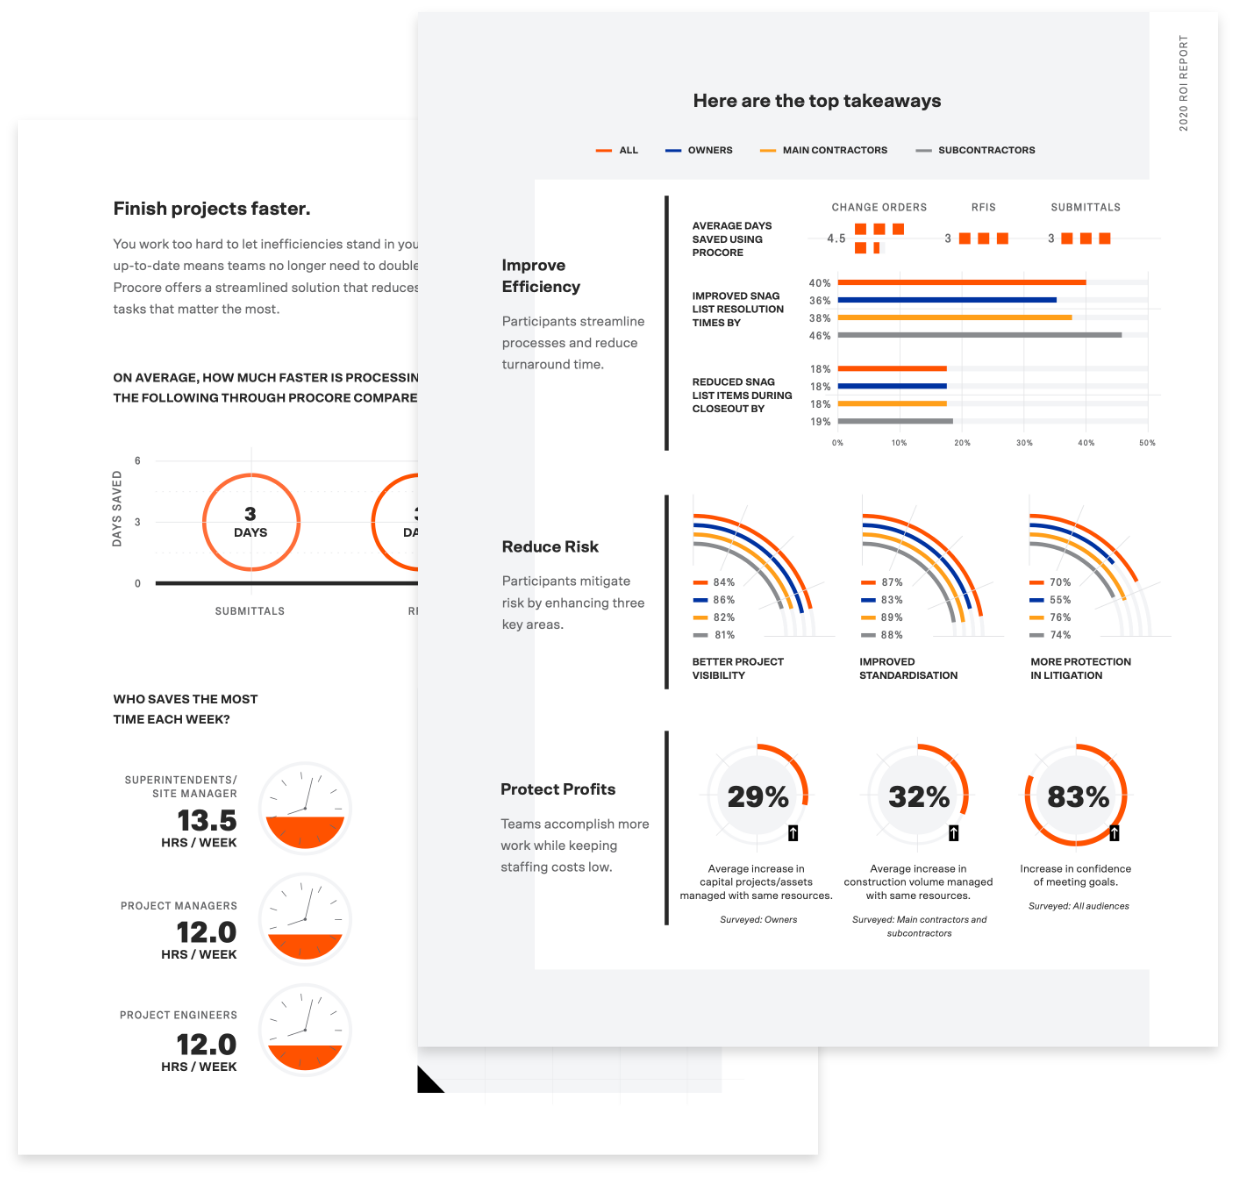 UKI Pages for the 2020 ROI report